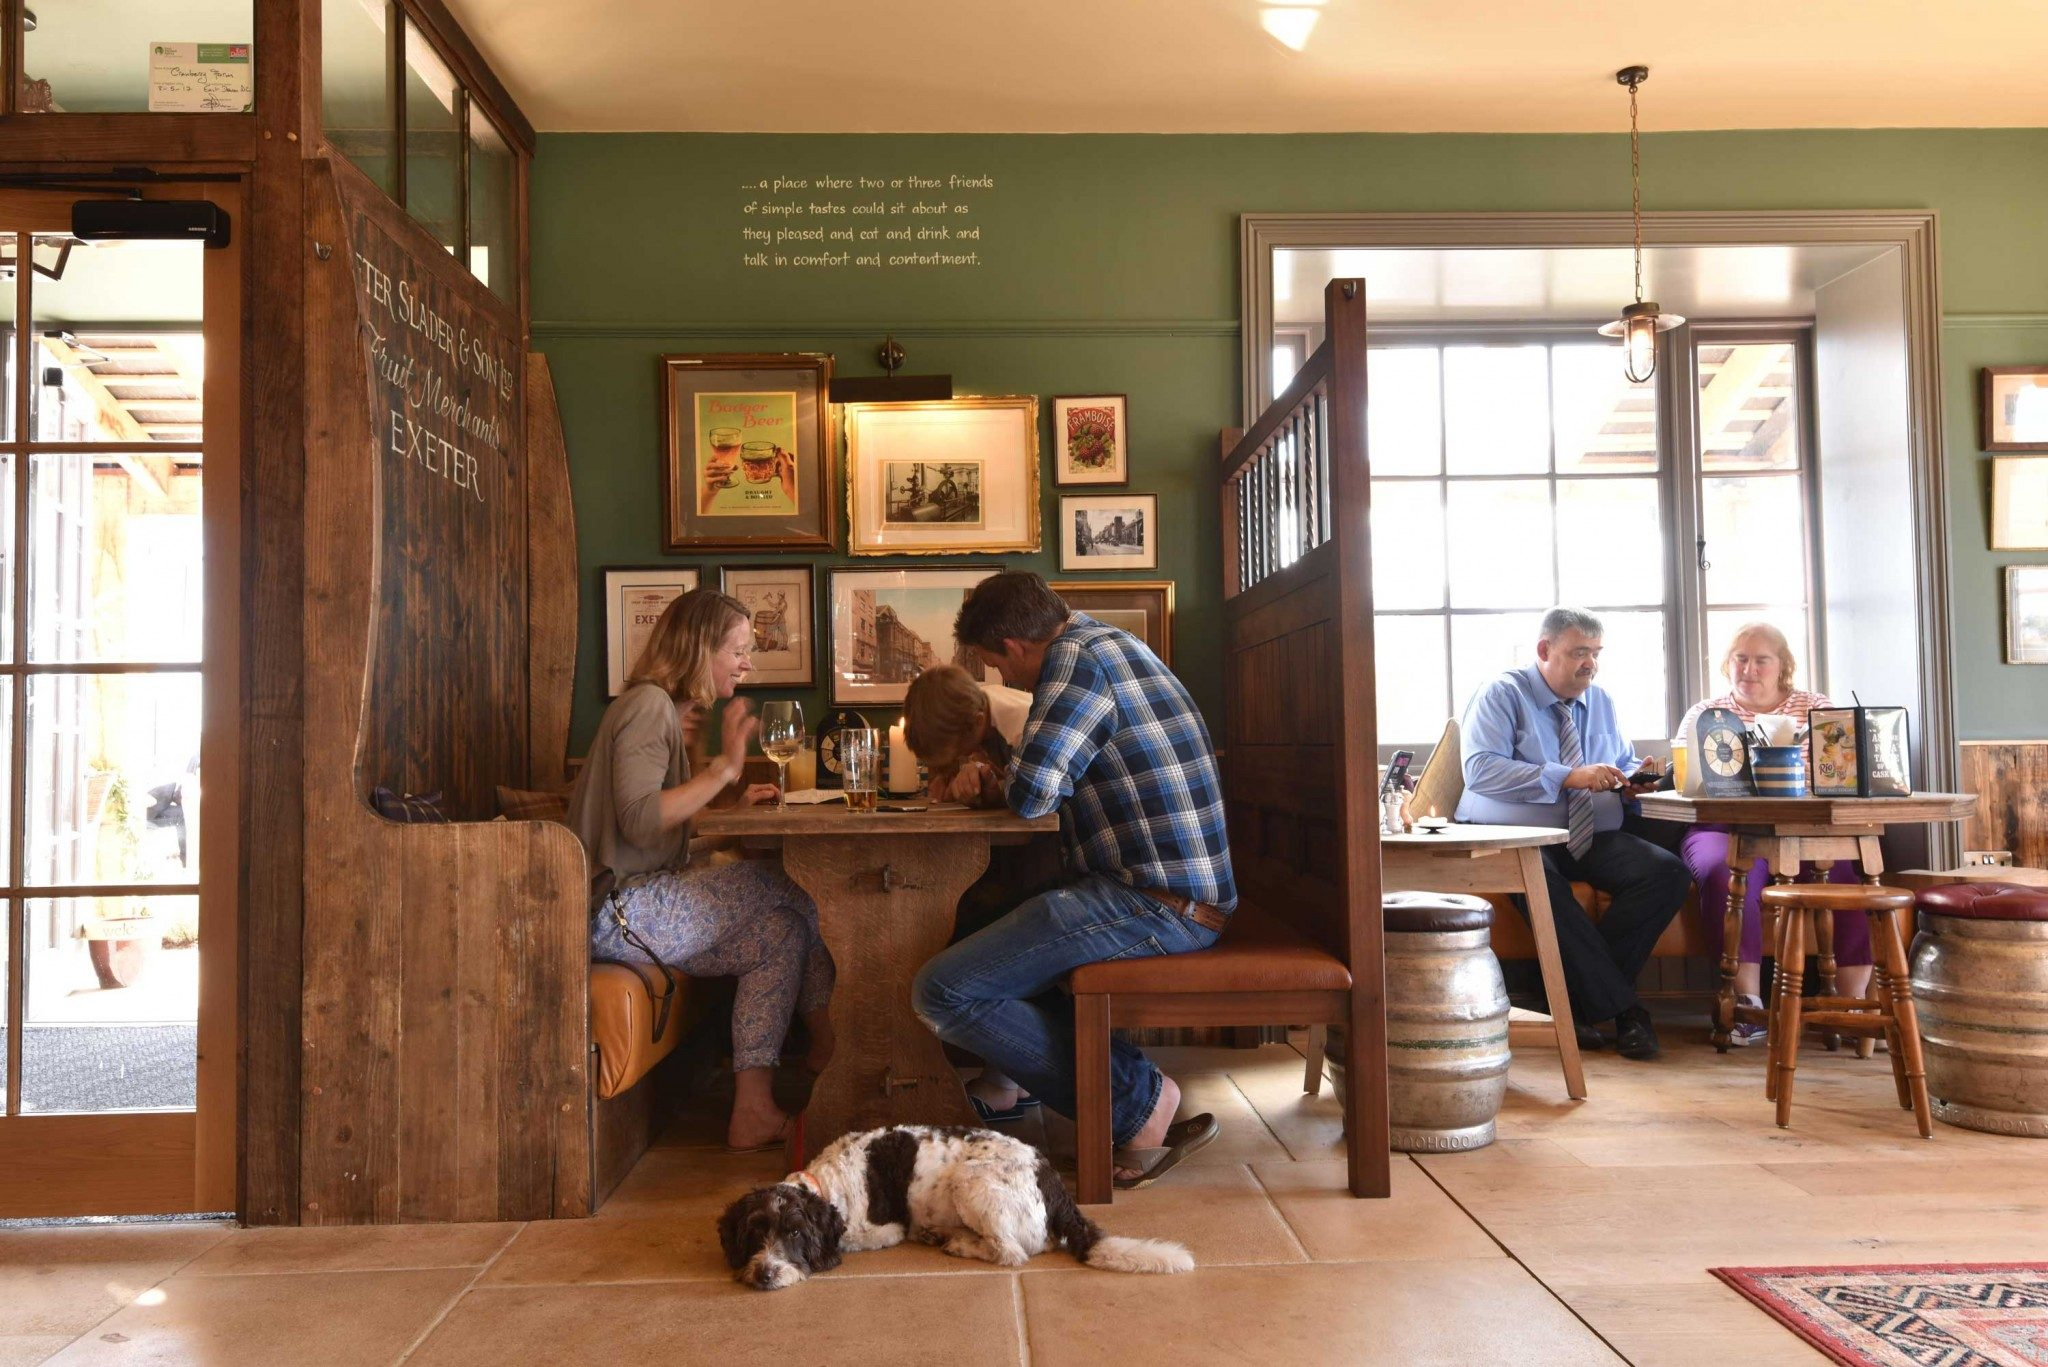 mackenzie wheeler are new build pub architects based in shoreditch london specializing in barn restaurant spaces